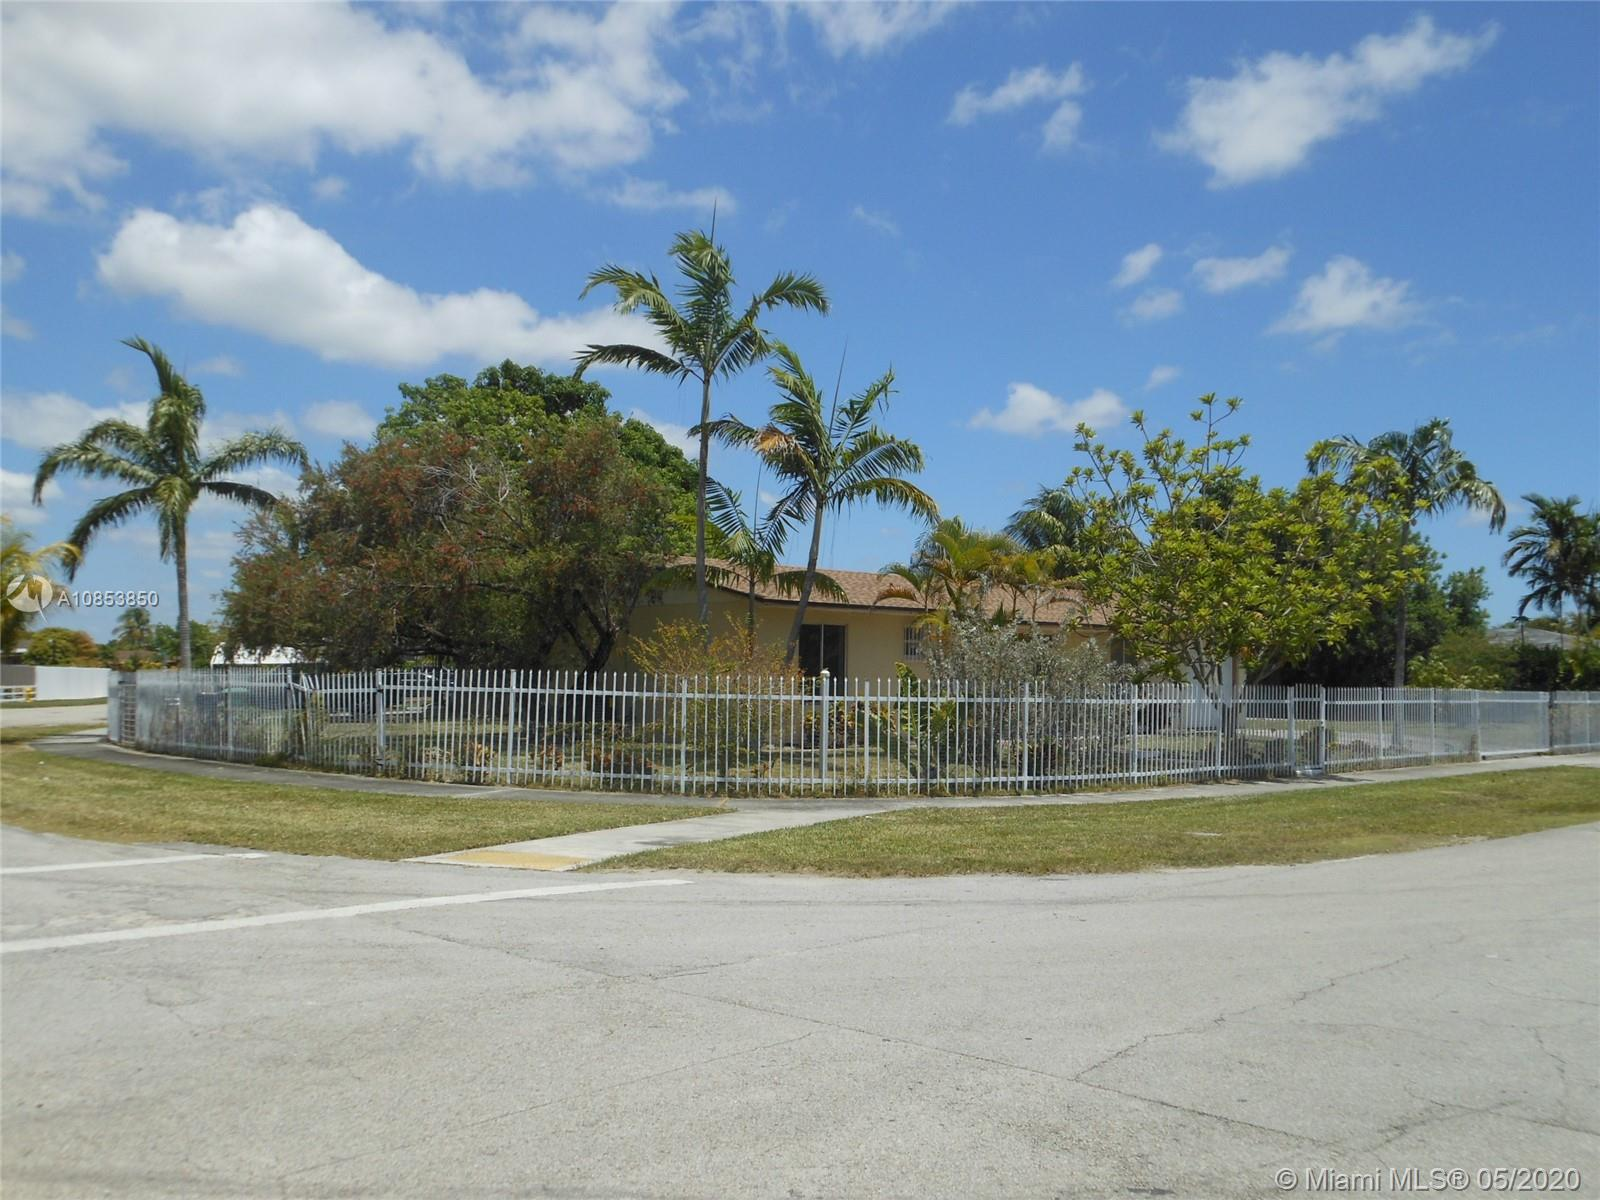 14925 SW 307th St, Homestead, Florida 33033, 4 Bedrooms Bedrooms, ,2 BathroomsBathrooms,Residential,For Sale,14925 SW 307th St,A10853850